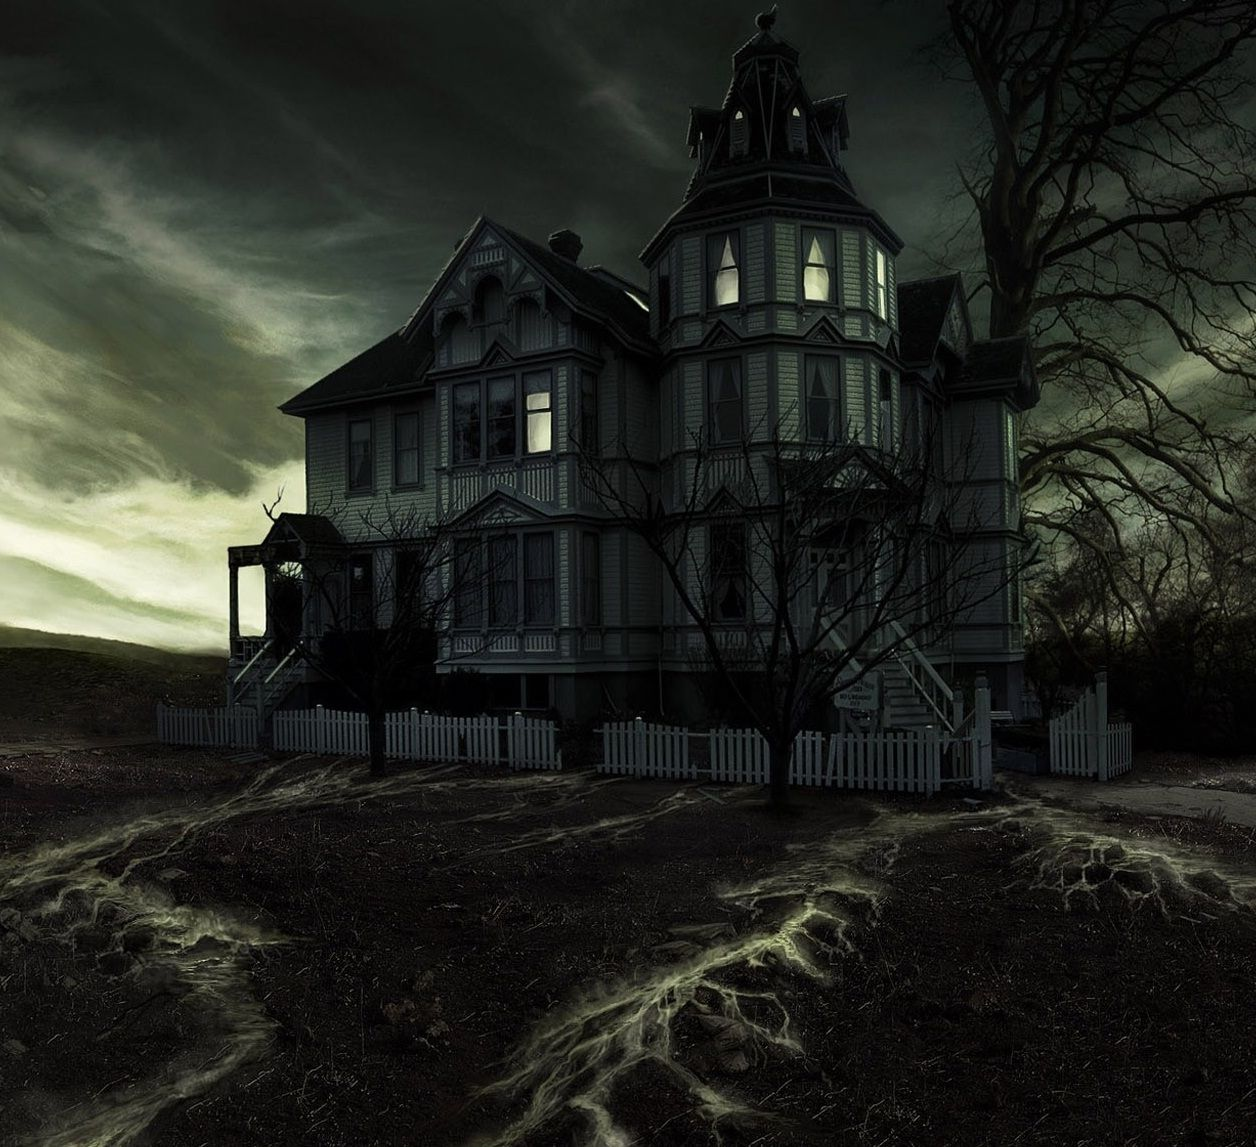 This website is currently unavailable. Spooky house